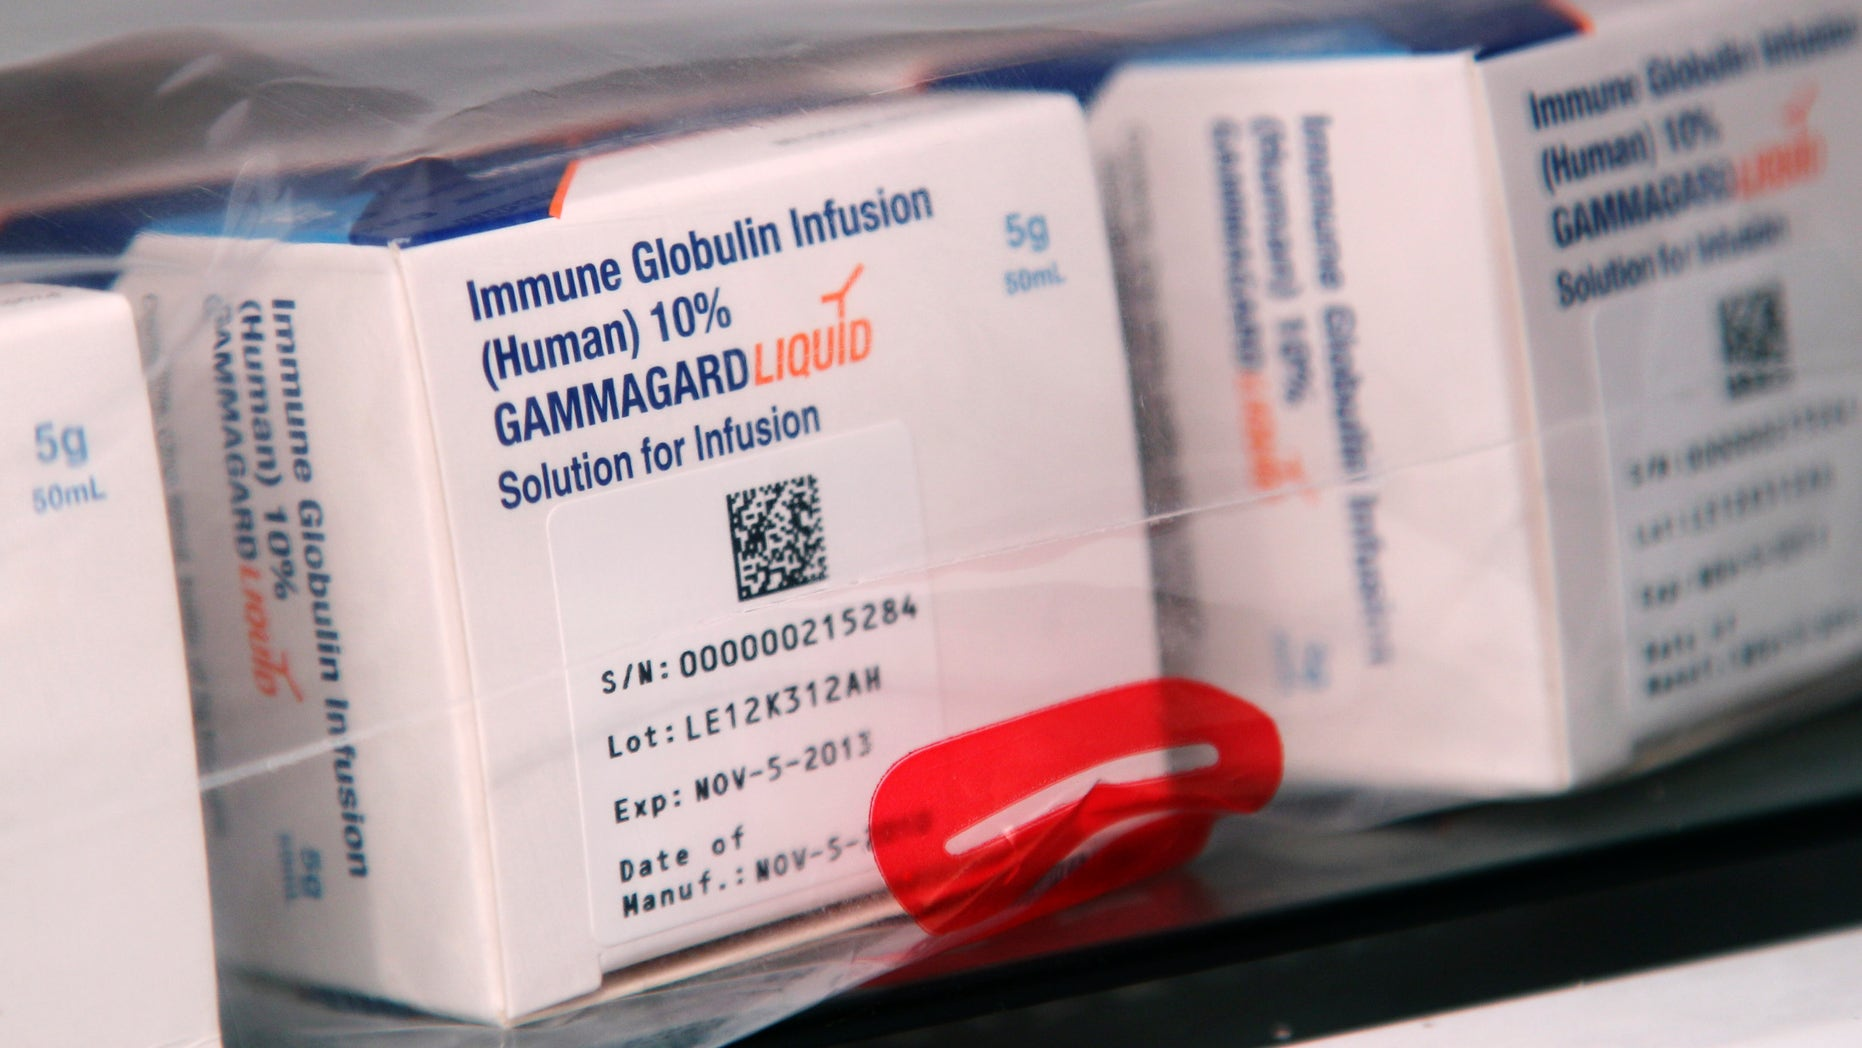 Gammagard, a treatment that is being tested for Alzheimer's disease. (AP Photo/Seth Wenig)